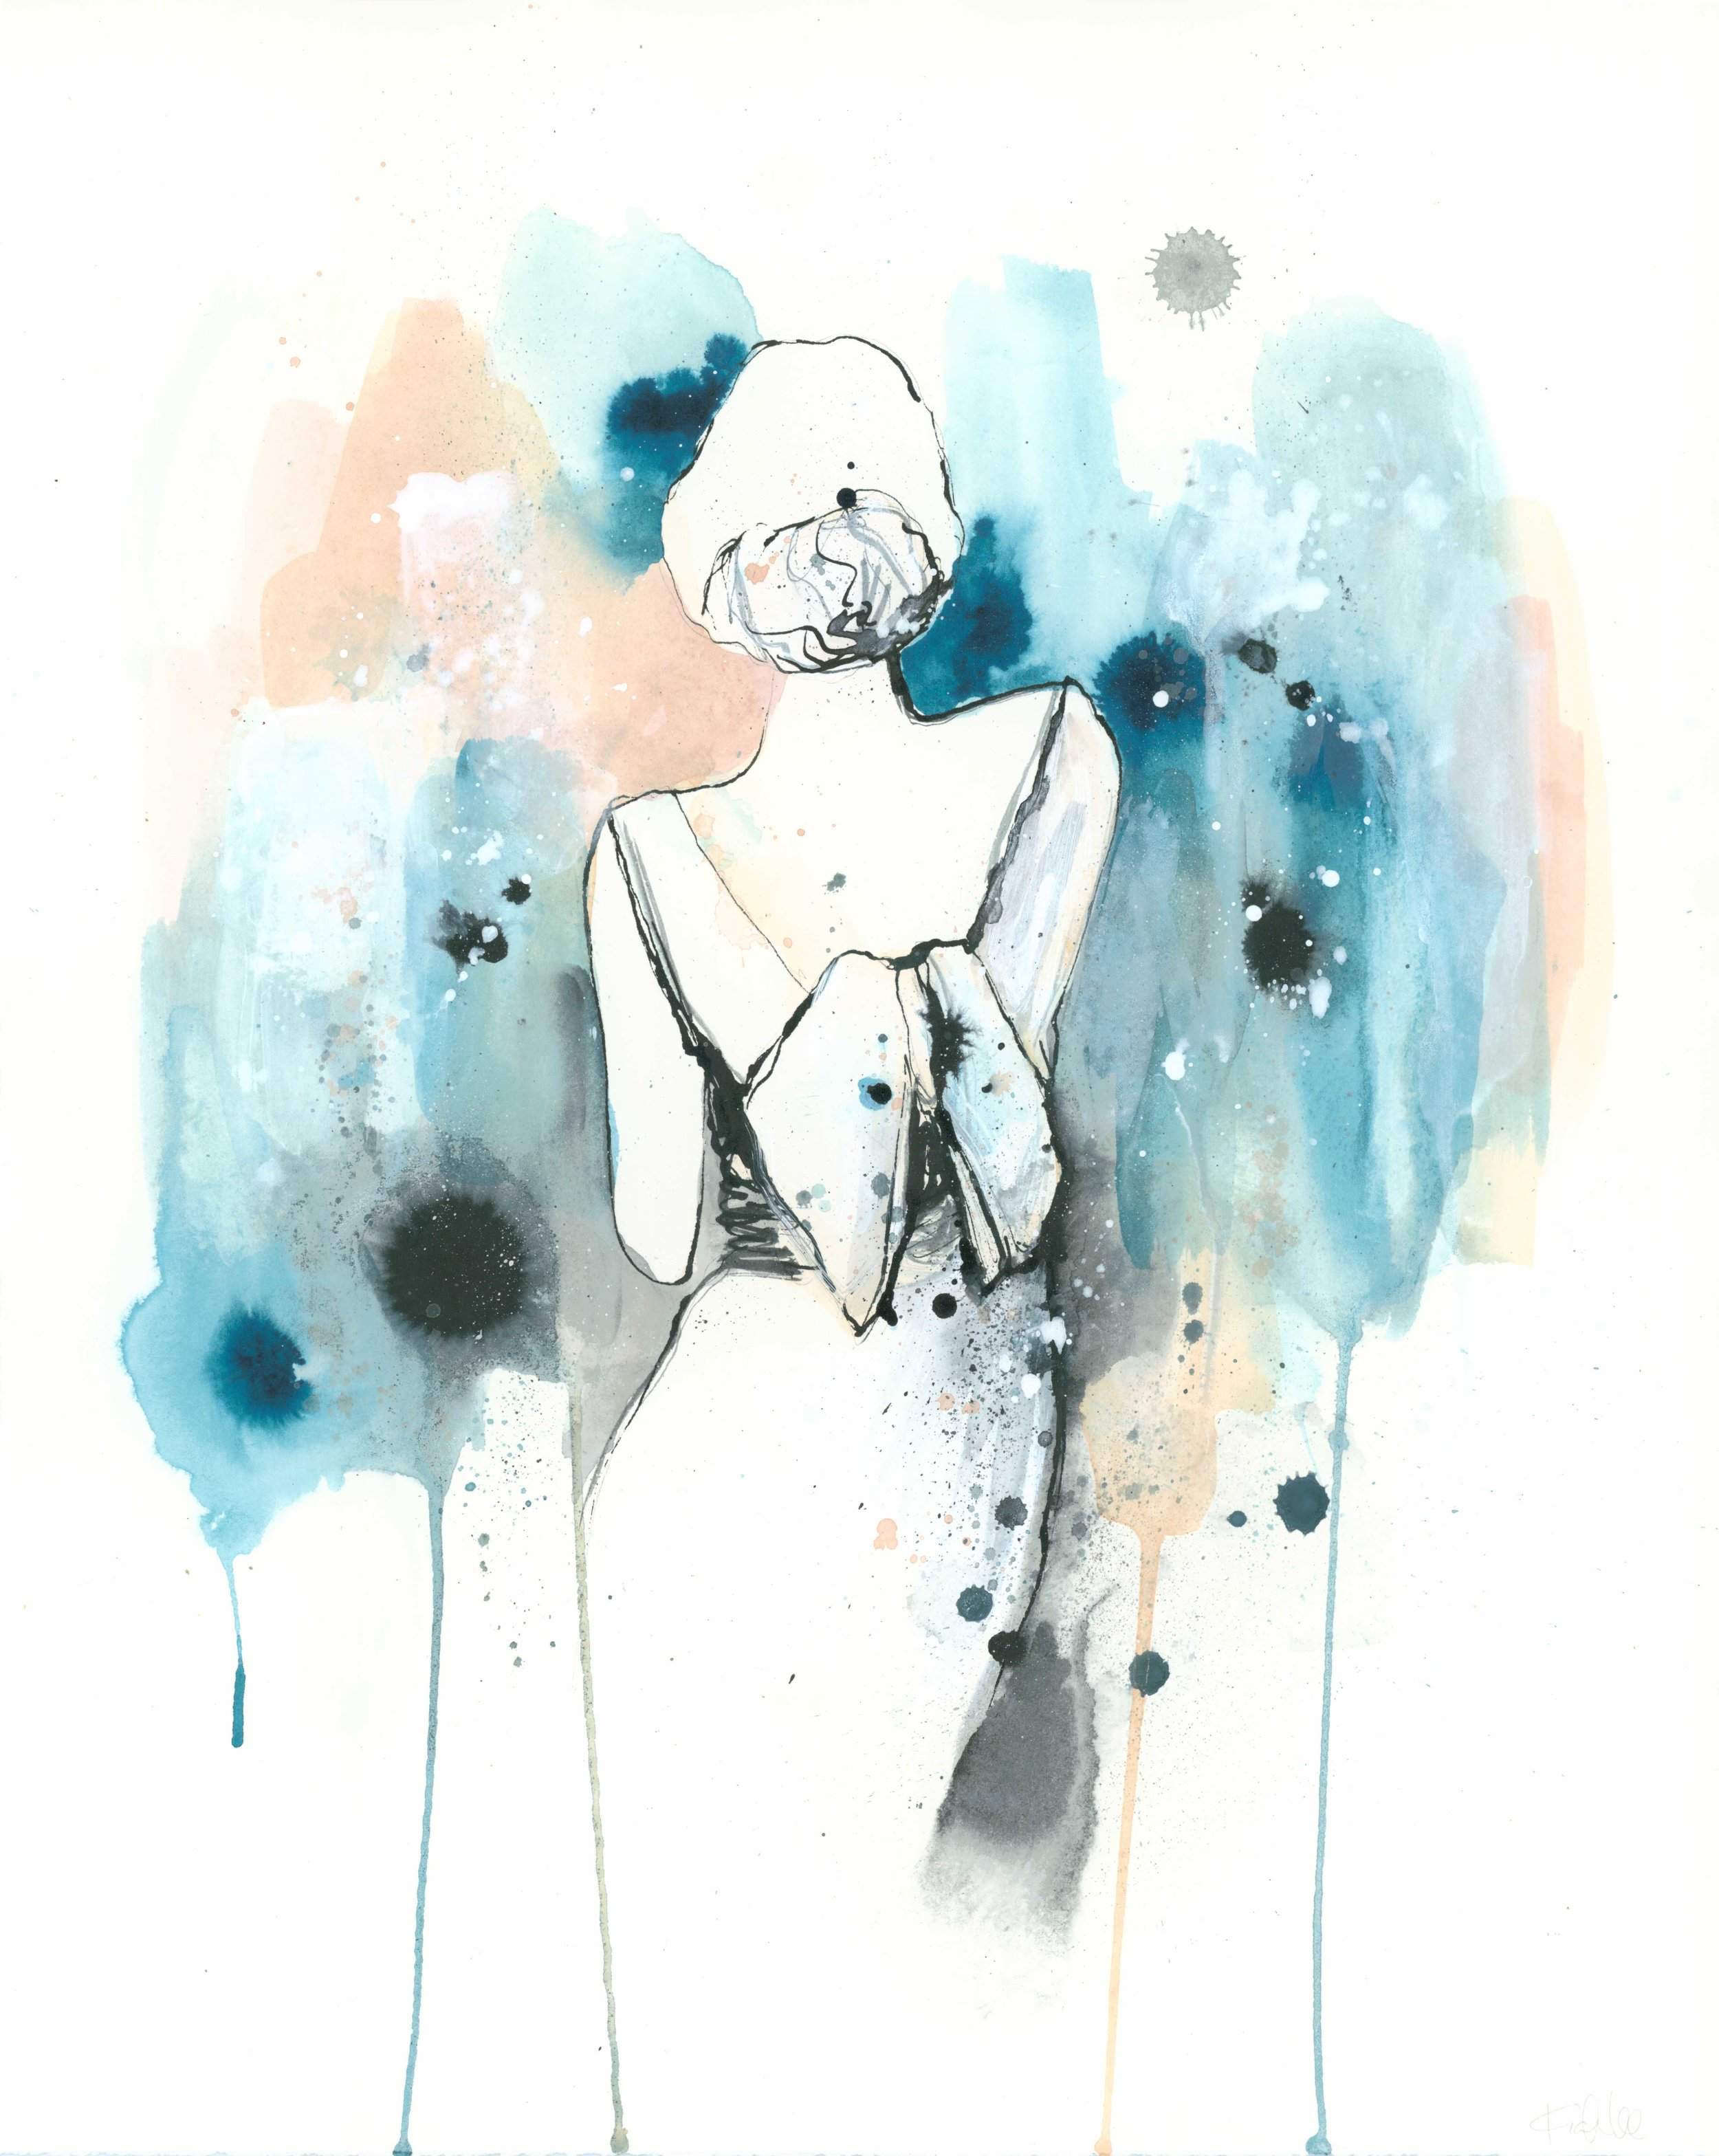 """""""Lady 1""""  ink, pen & acrylic on paper  20 x 16  2017  SOLD (commission)"""